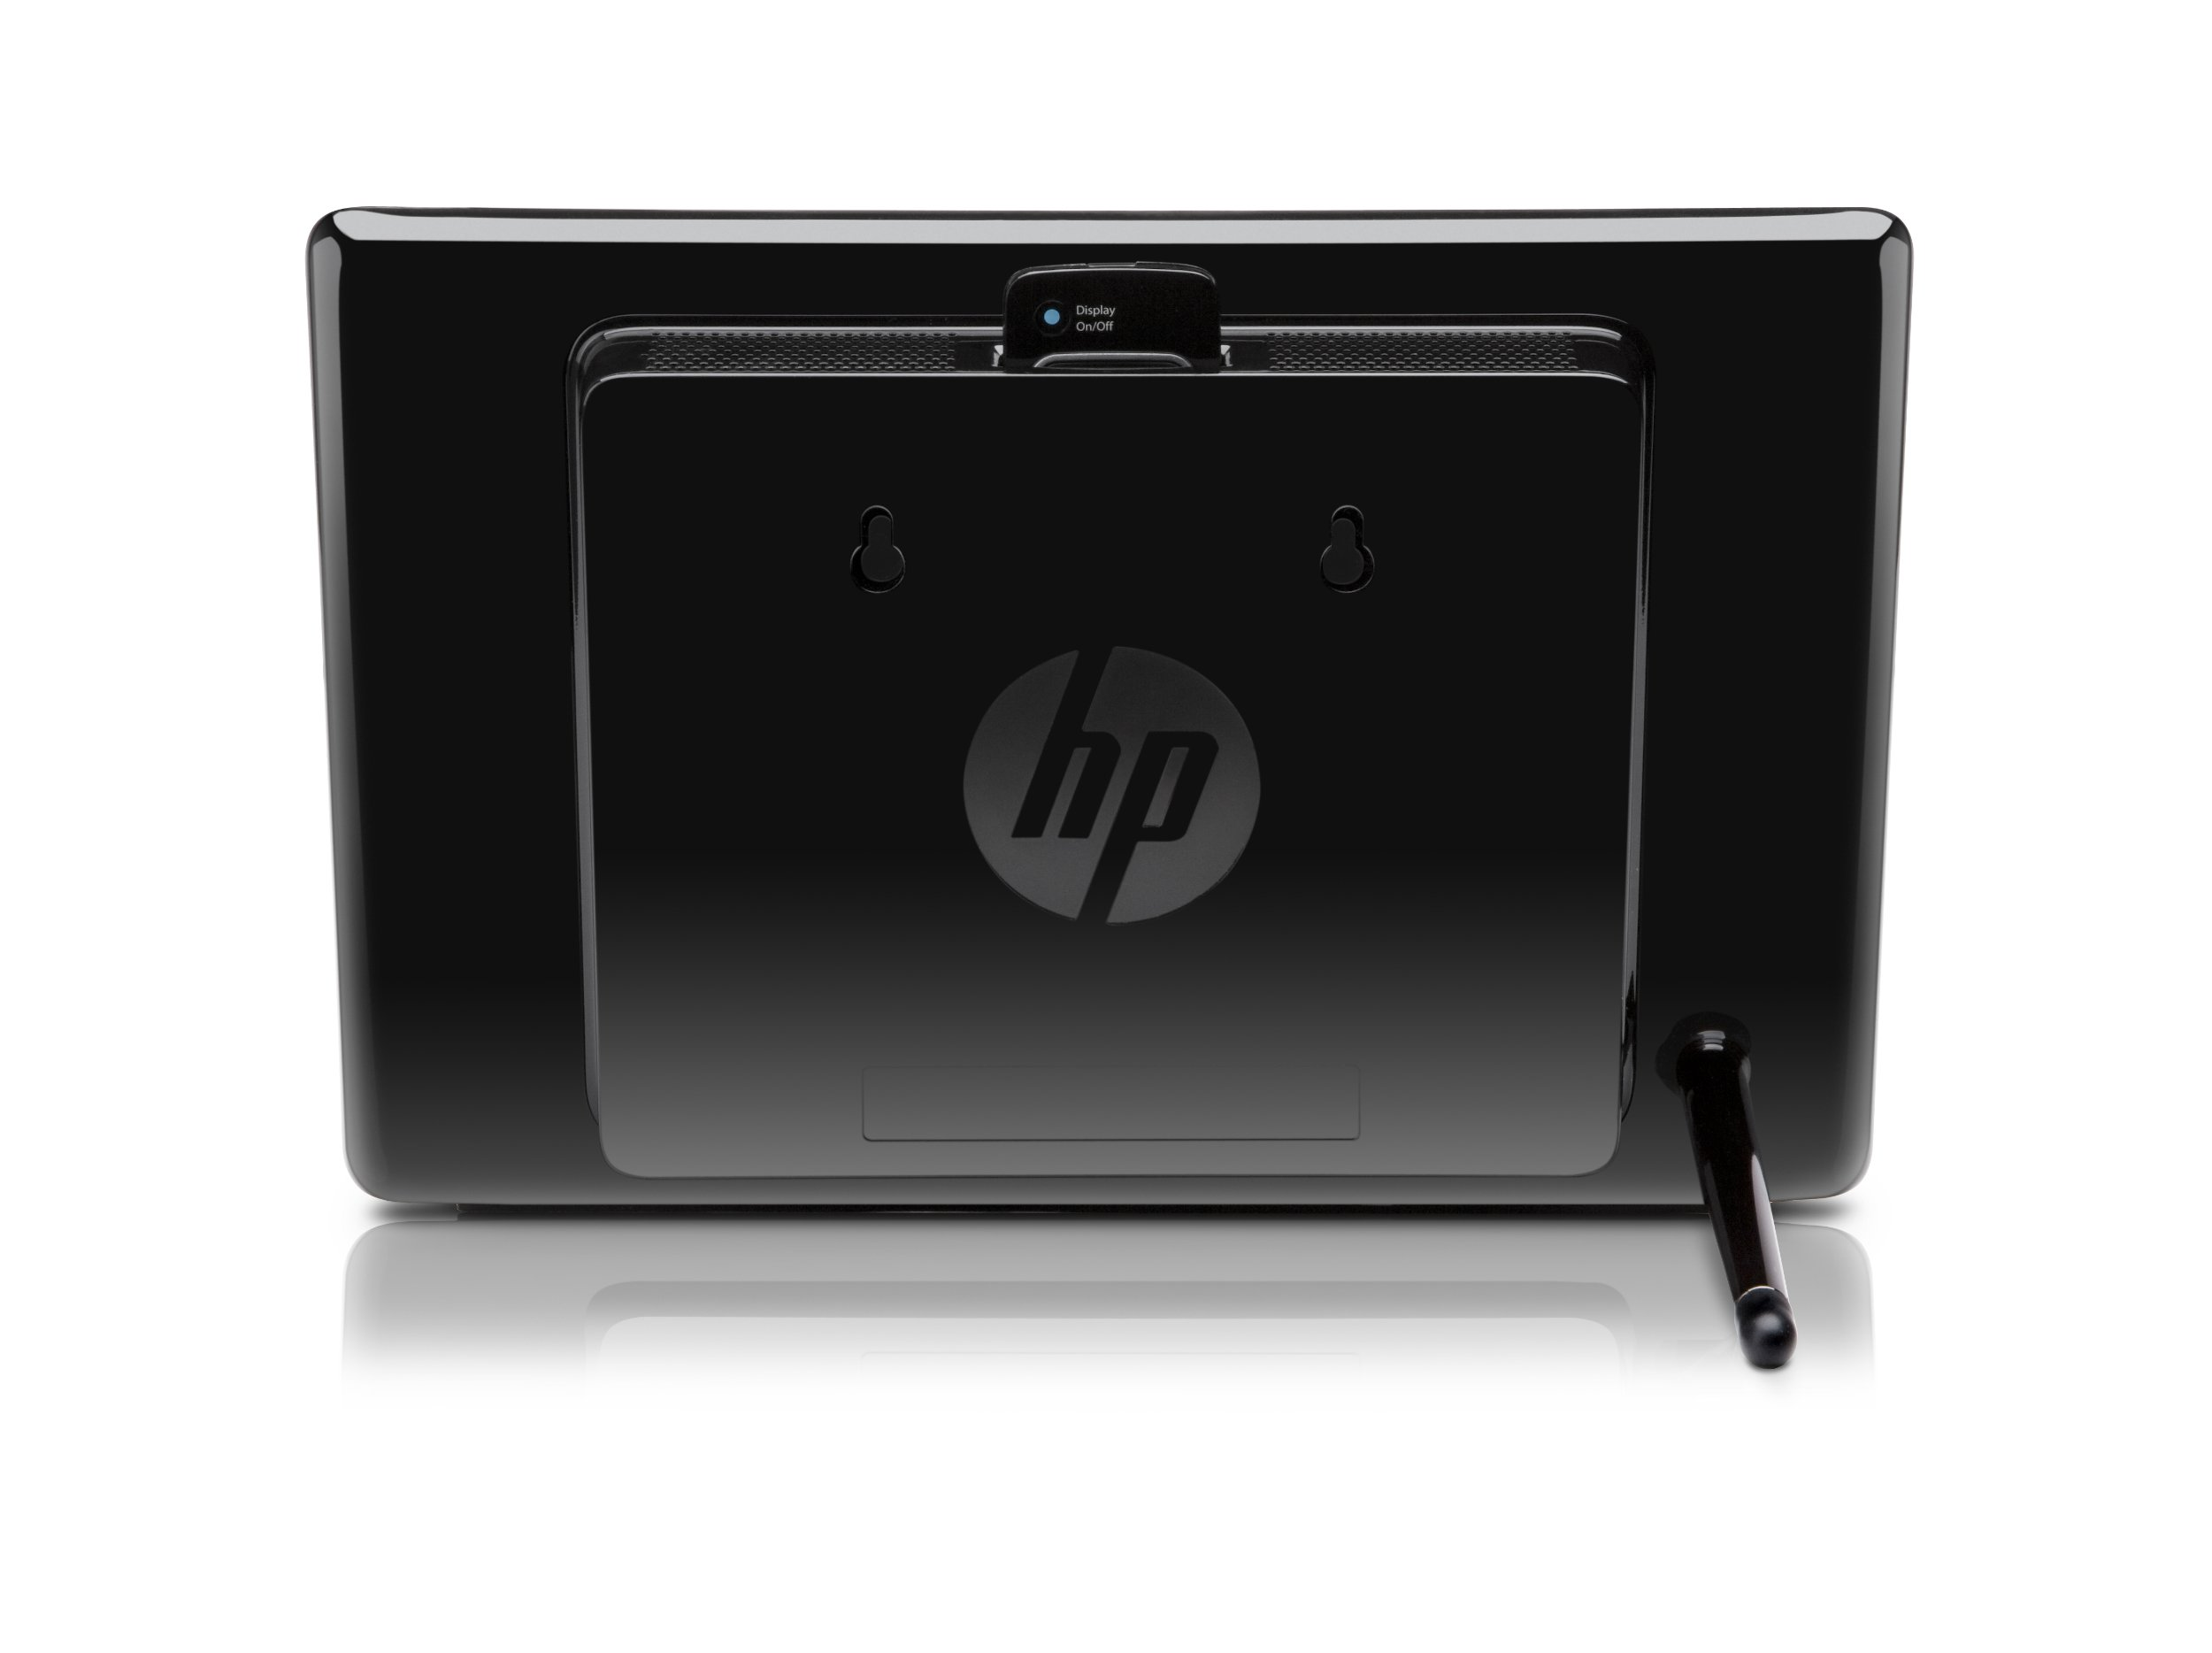 HP DreamScreen 100 10.2-Inch Wireless Connected Screen